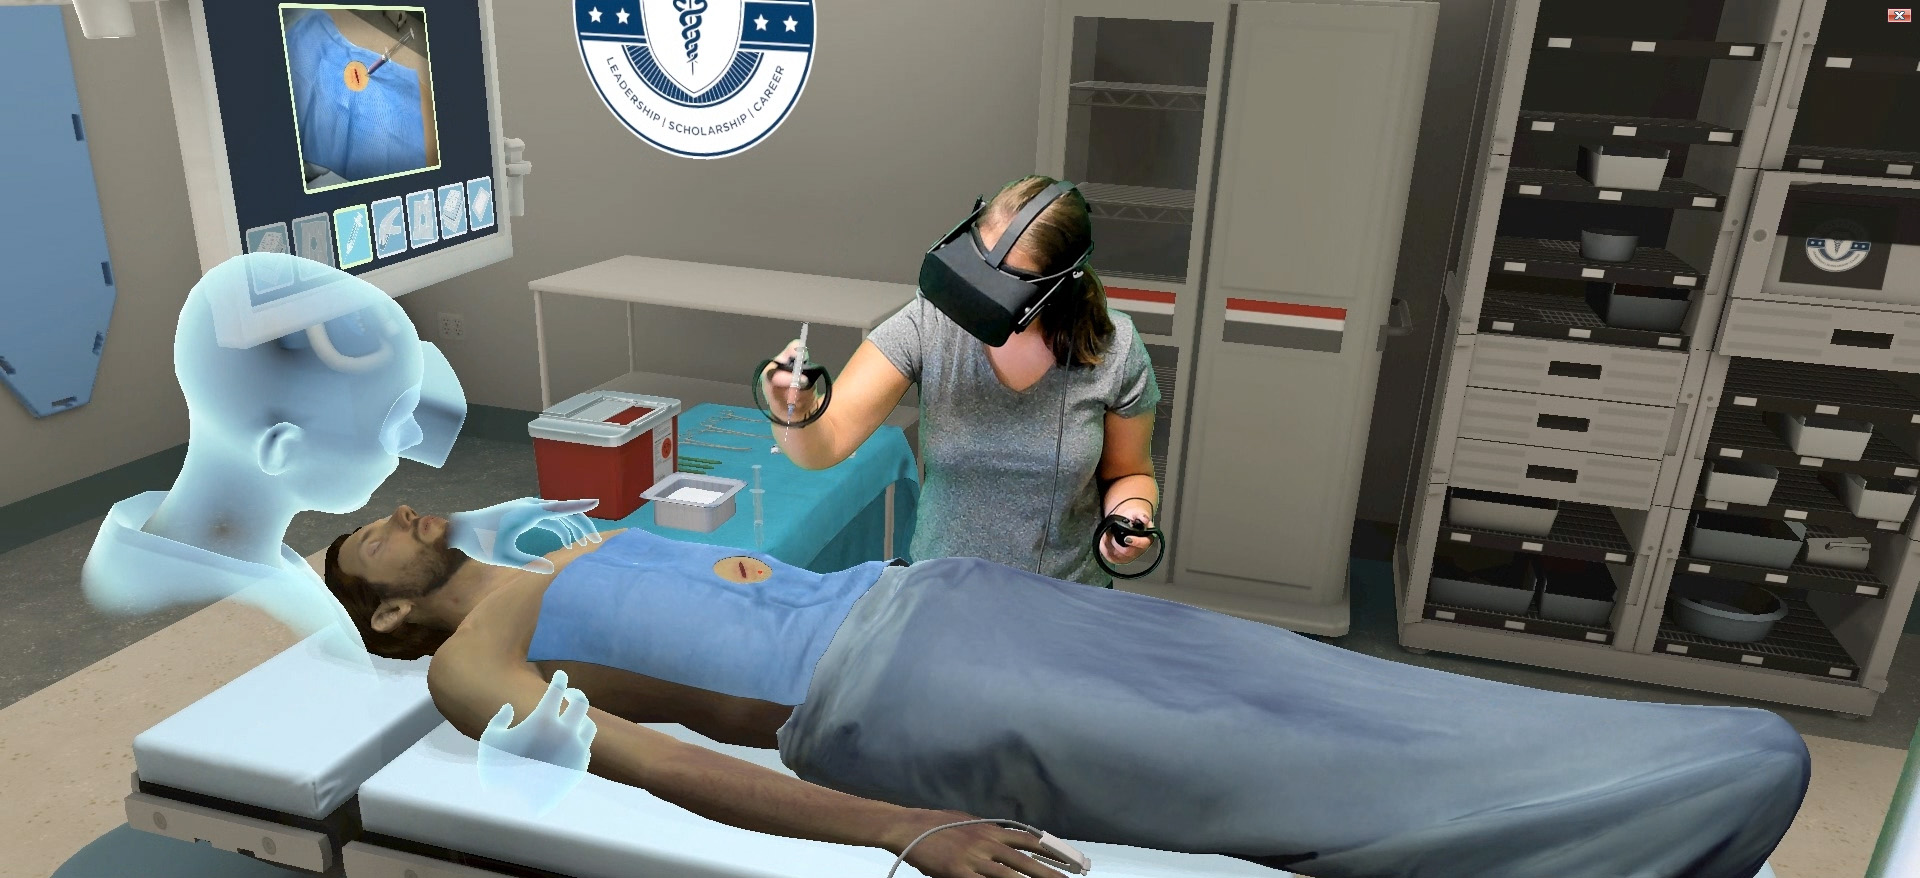 medical simulation and healthcare in virtual reality with oculus rift